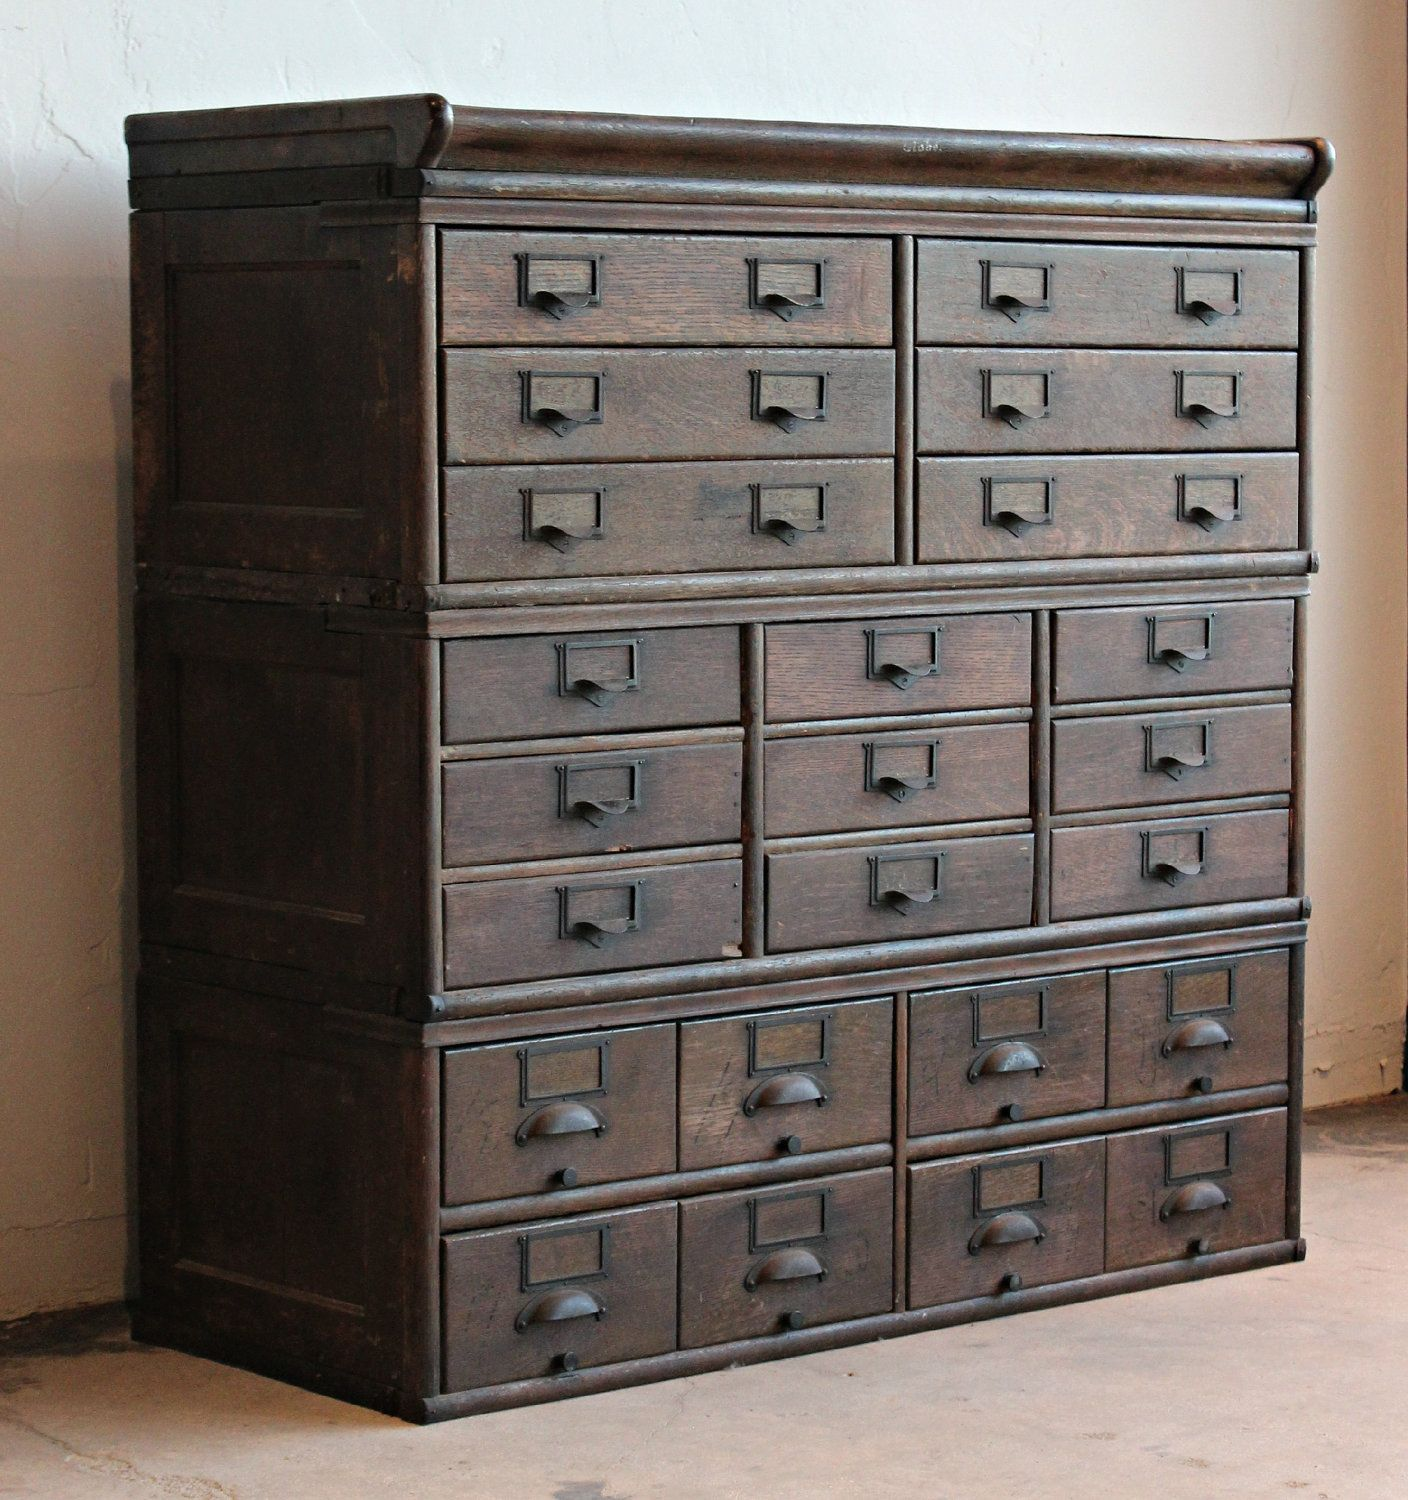 Antique Storage Cabinets Antique Wooden 23 Drawer Storage Cabinet Home Lilys Design Ideas